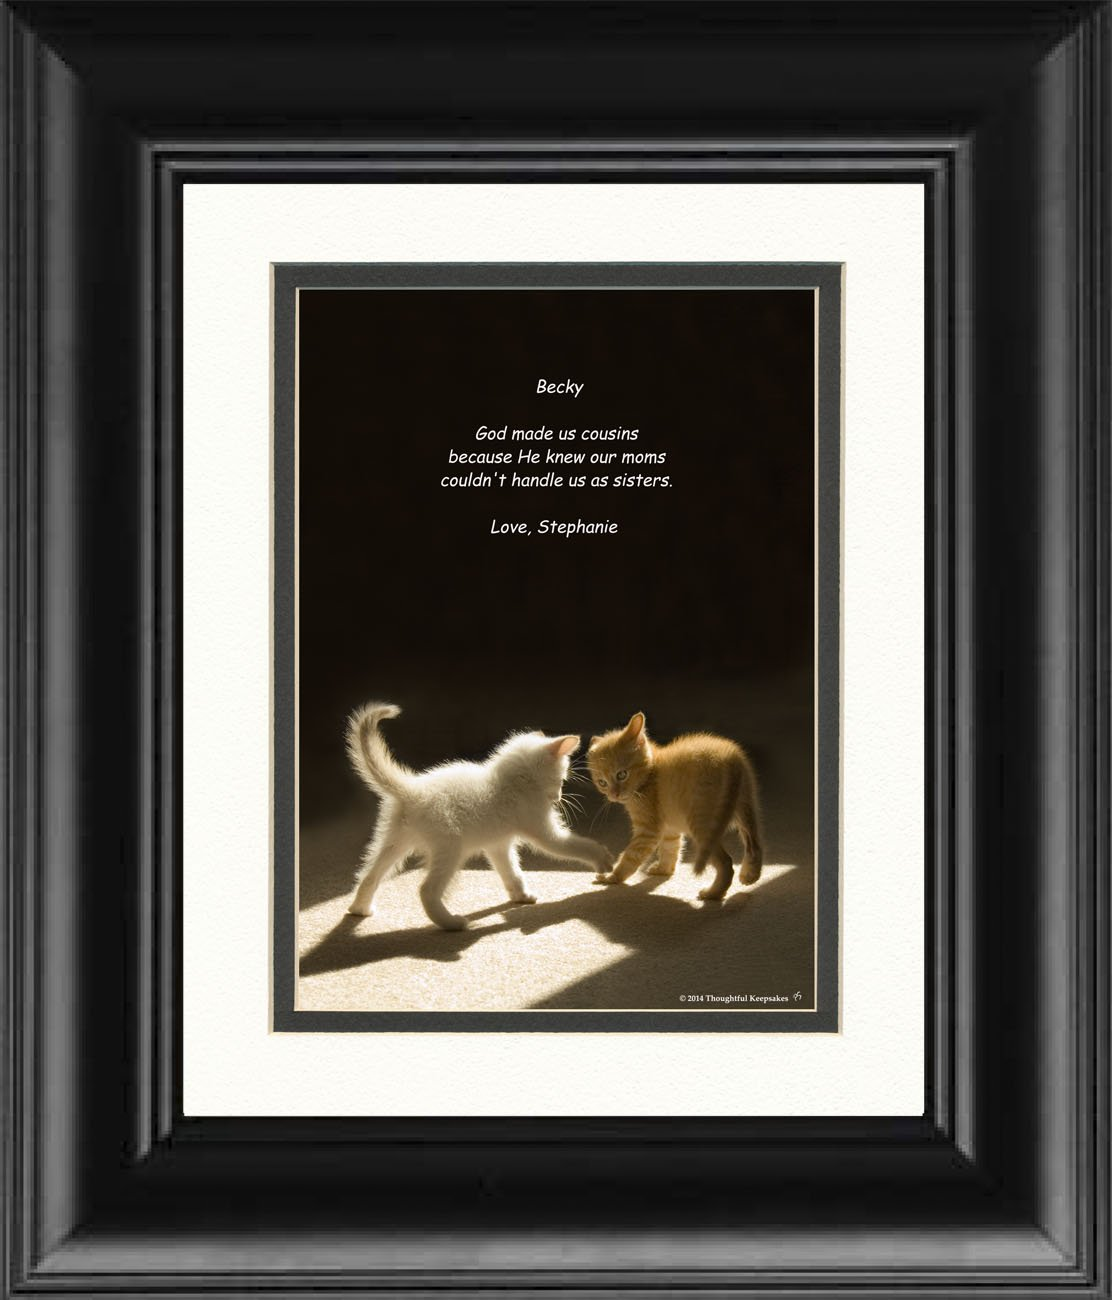 Amazoncom Framed Personalized Cousin Gift With God Made Us